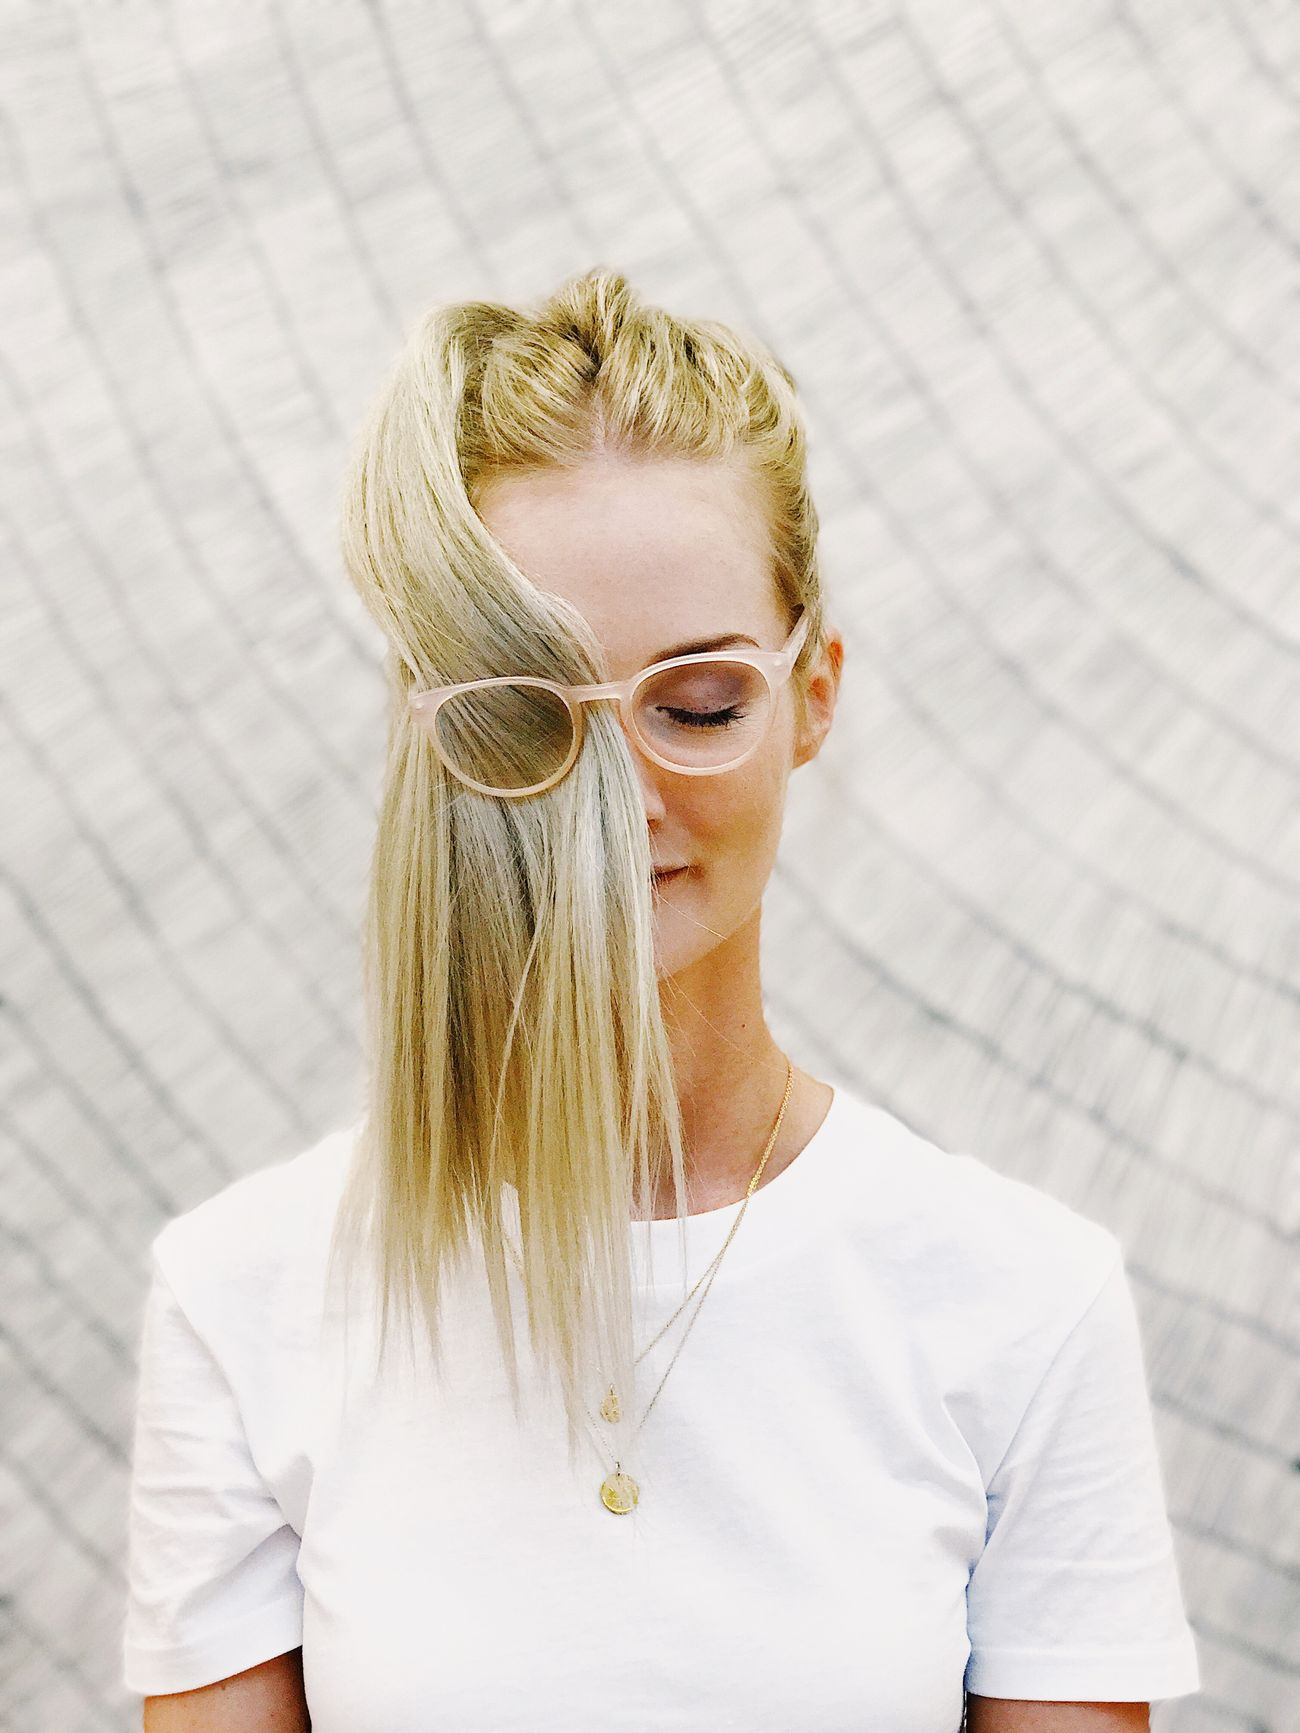 EyeEm Selects Blond Hair One Person Sunglasses One Woman Only Casual Clothing Day Young Adult Outdoors Eyeglasses  Women Only Women Headshot Beautiful Woman Adults Only Portrait Adult One Young Woman Only Young Women People Close-up The Week On EyeEm